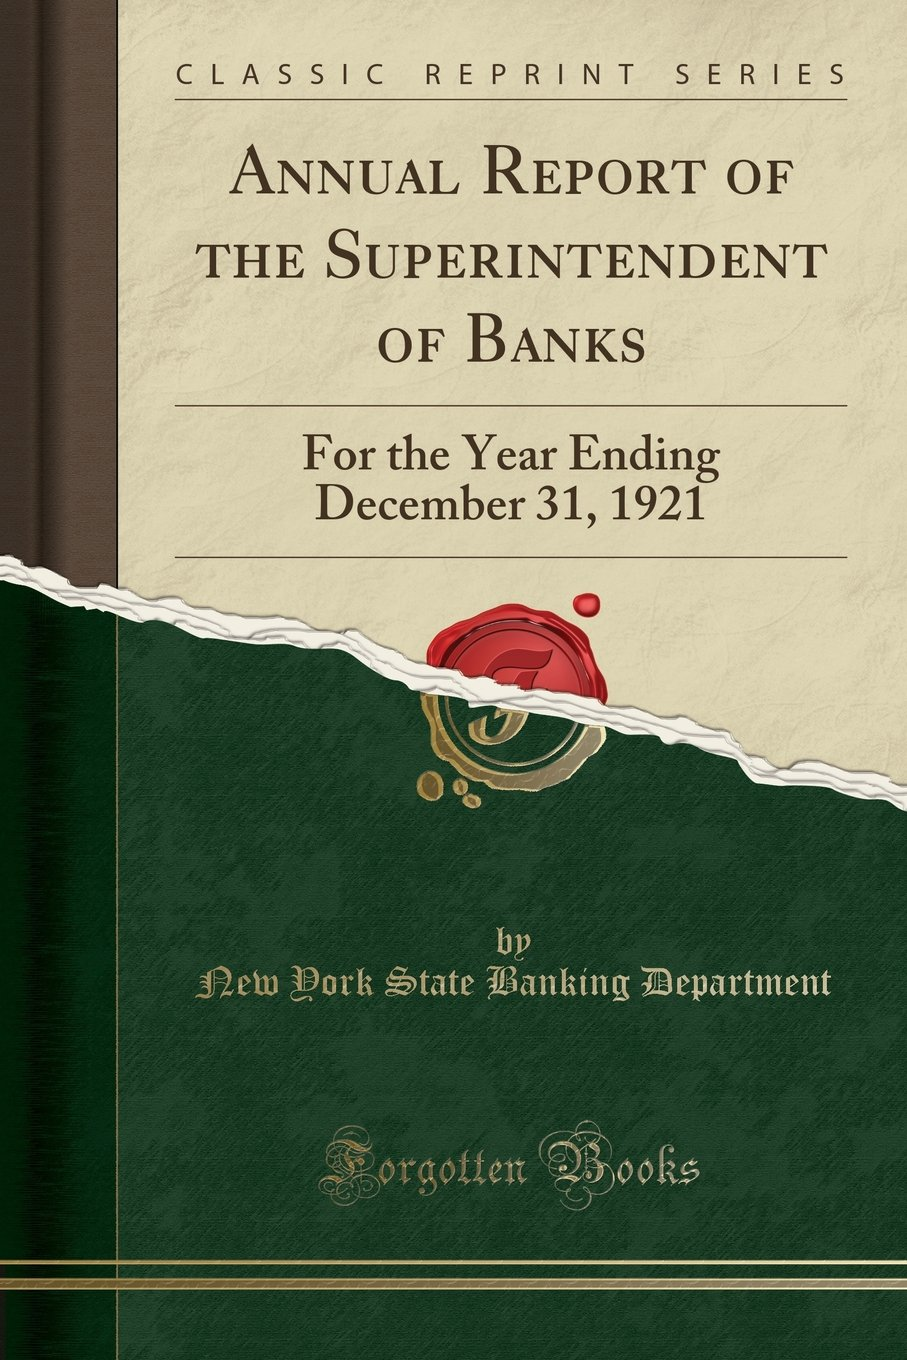 Annual Report of the Superintendent of Banks: For the Year Ending December 31, 1921 (Classic Reprint) ebook